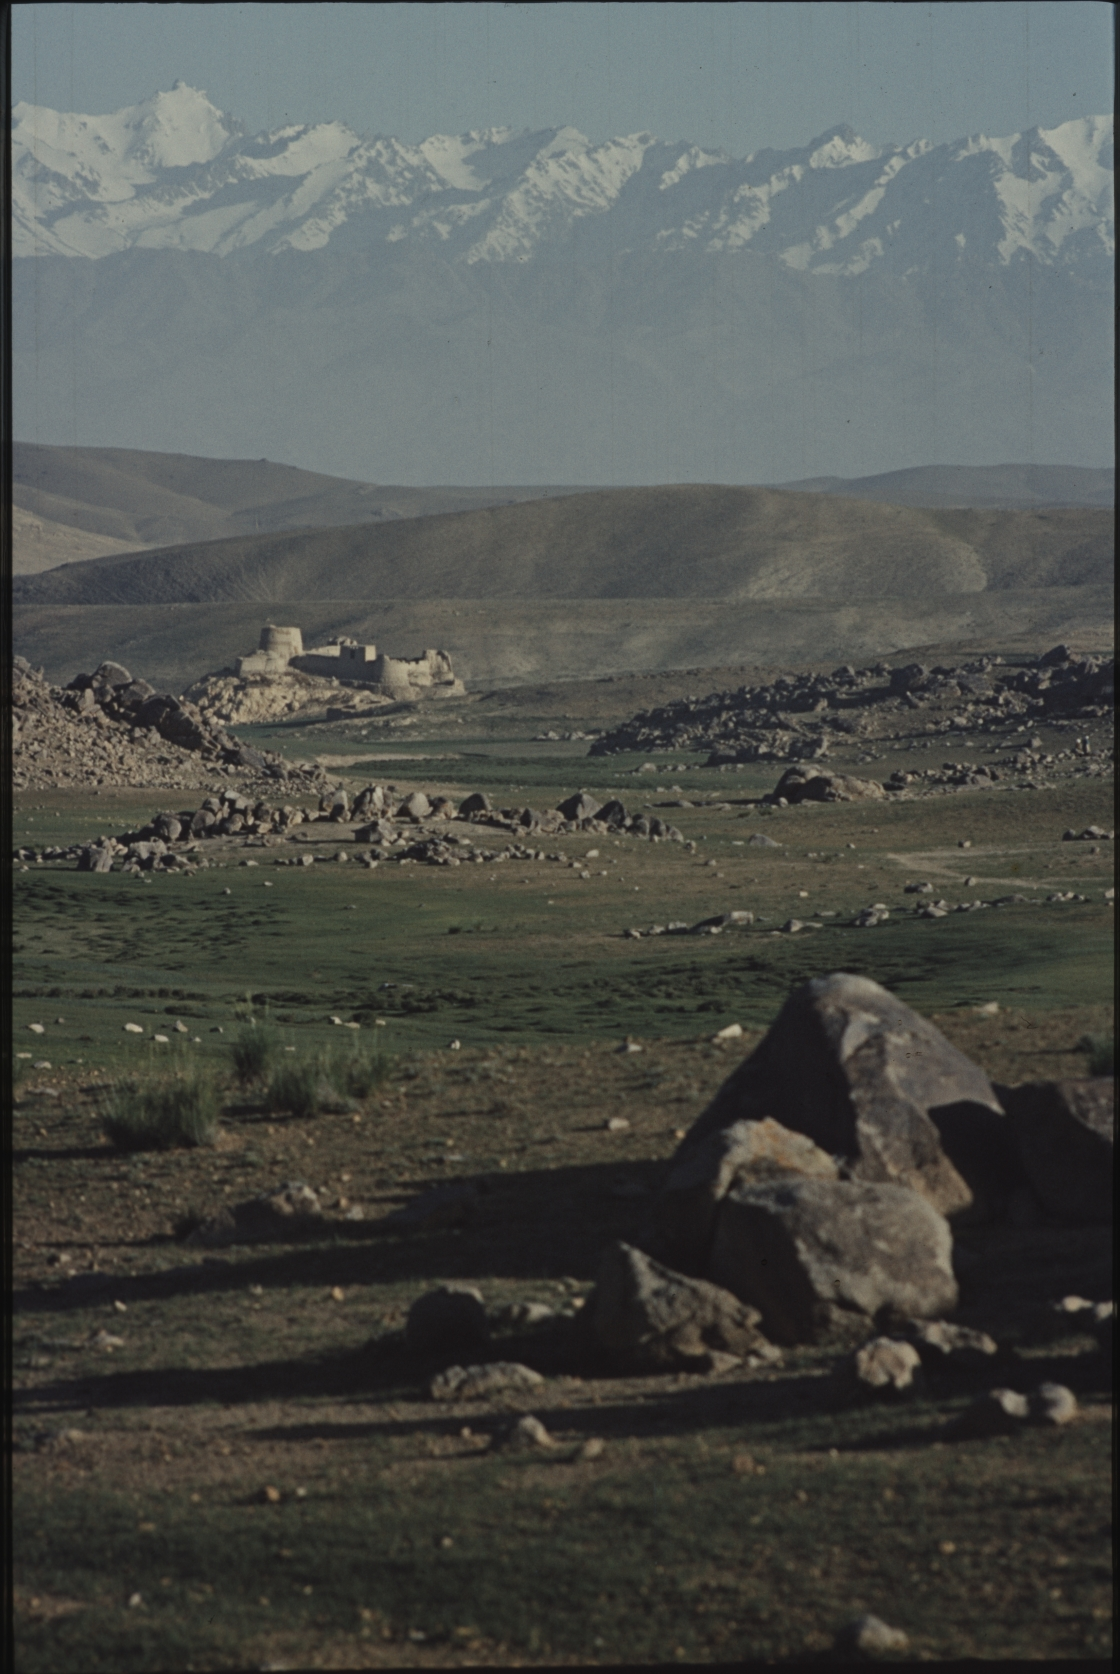 Travelling through the highlands, the nomads pass an old fortress. Photo: Jean Bourgeois, 1968